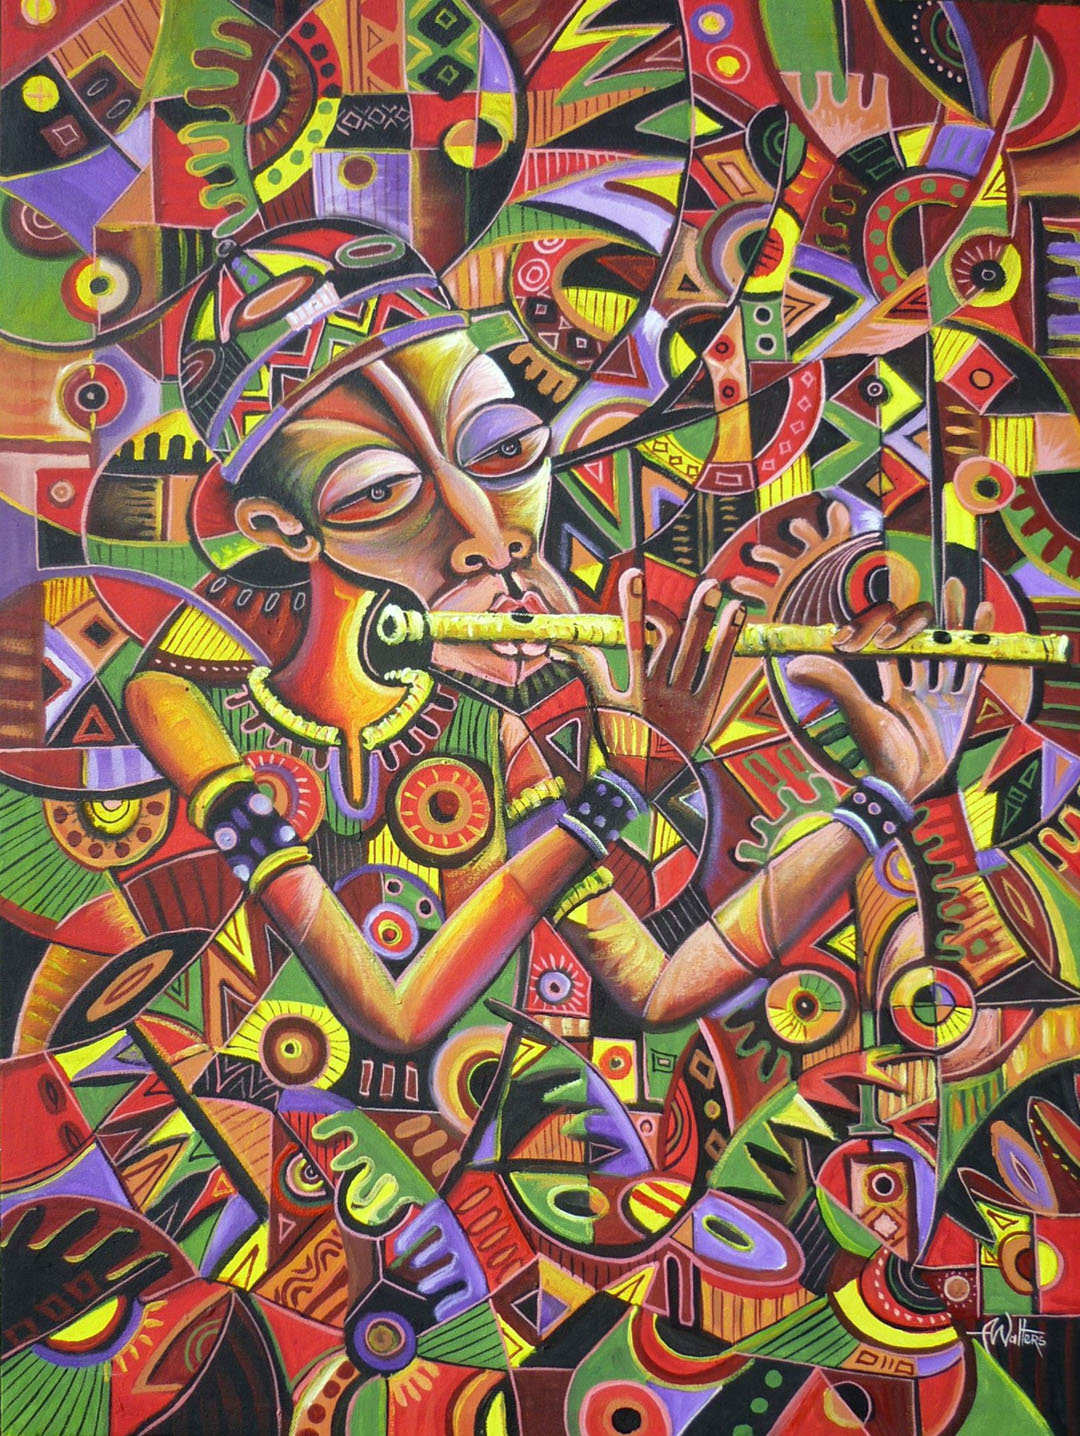 One of many Angu Walters paintings in celebration of flute music.